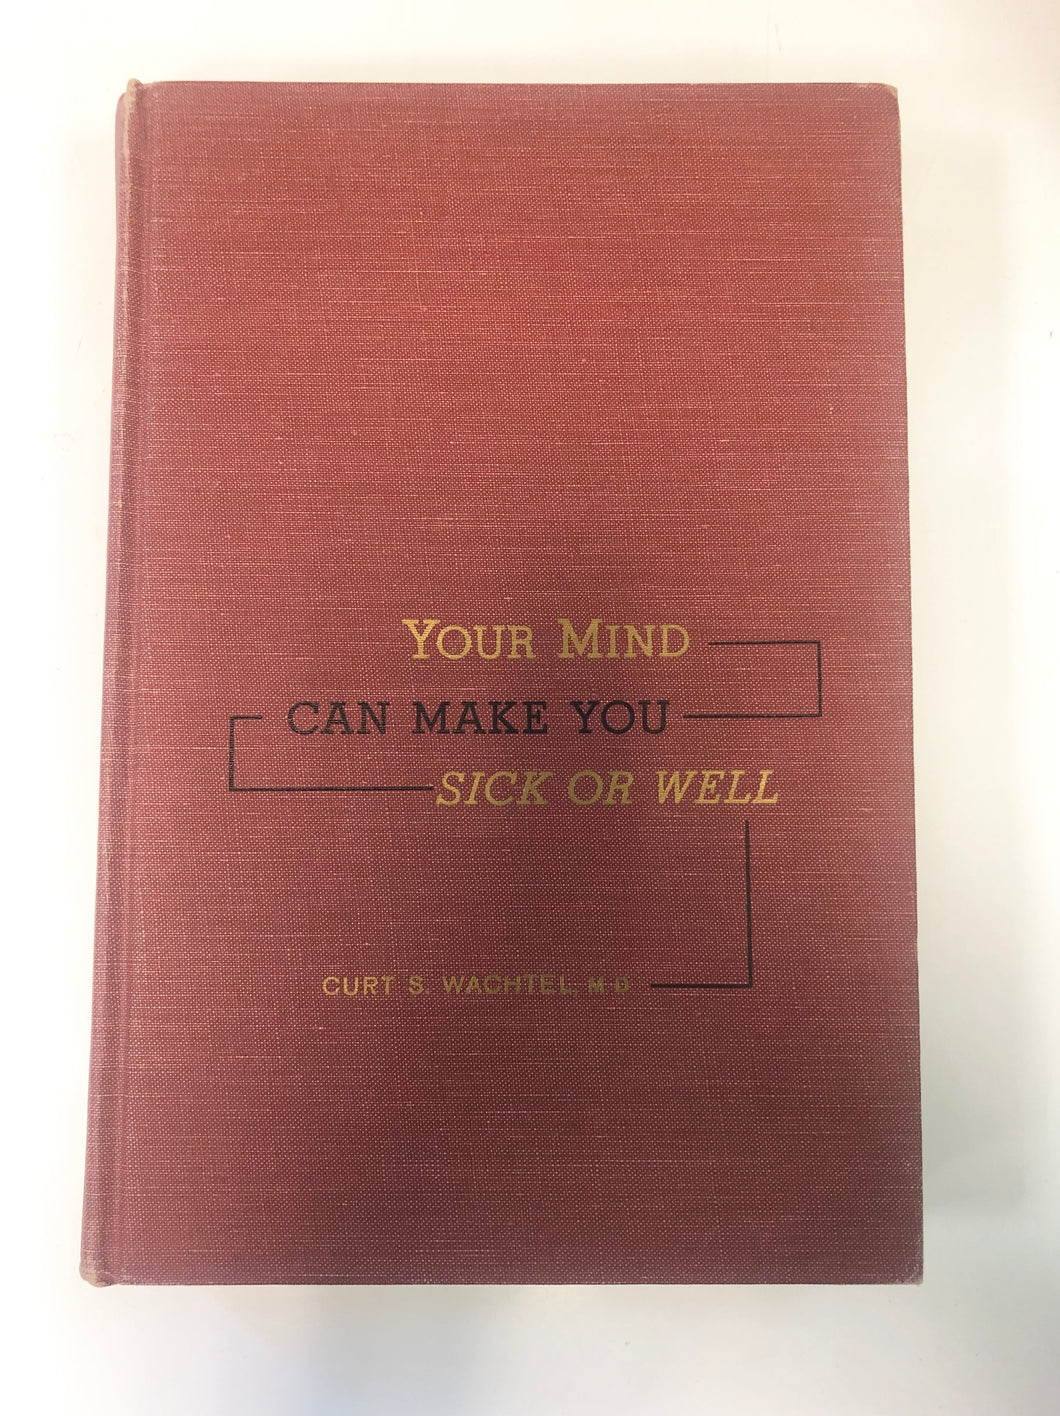 Your Mind Can Make You Sick or Well by Curt S. Wachtel